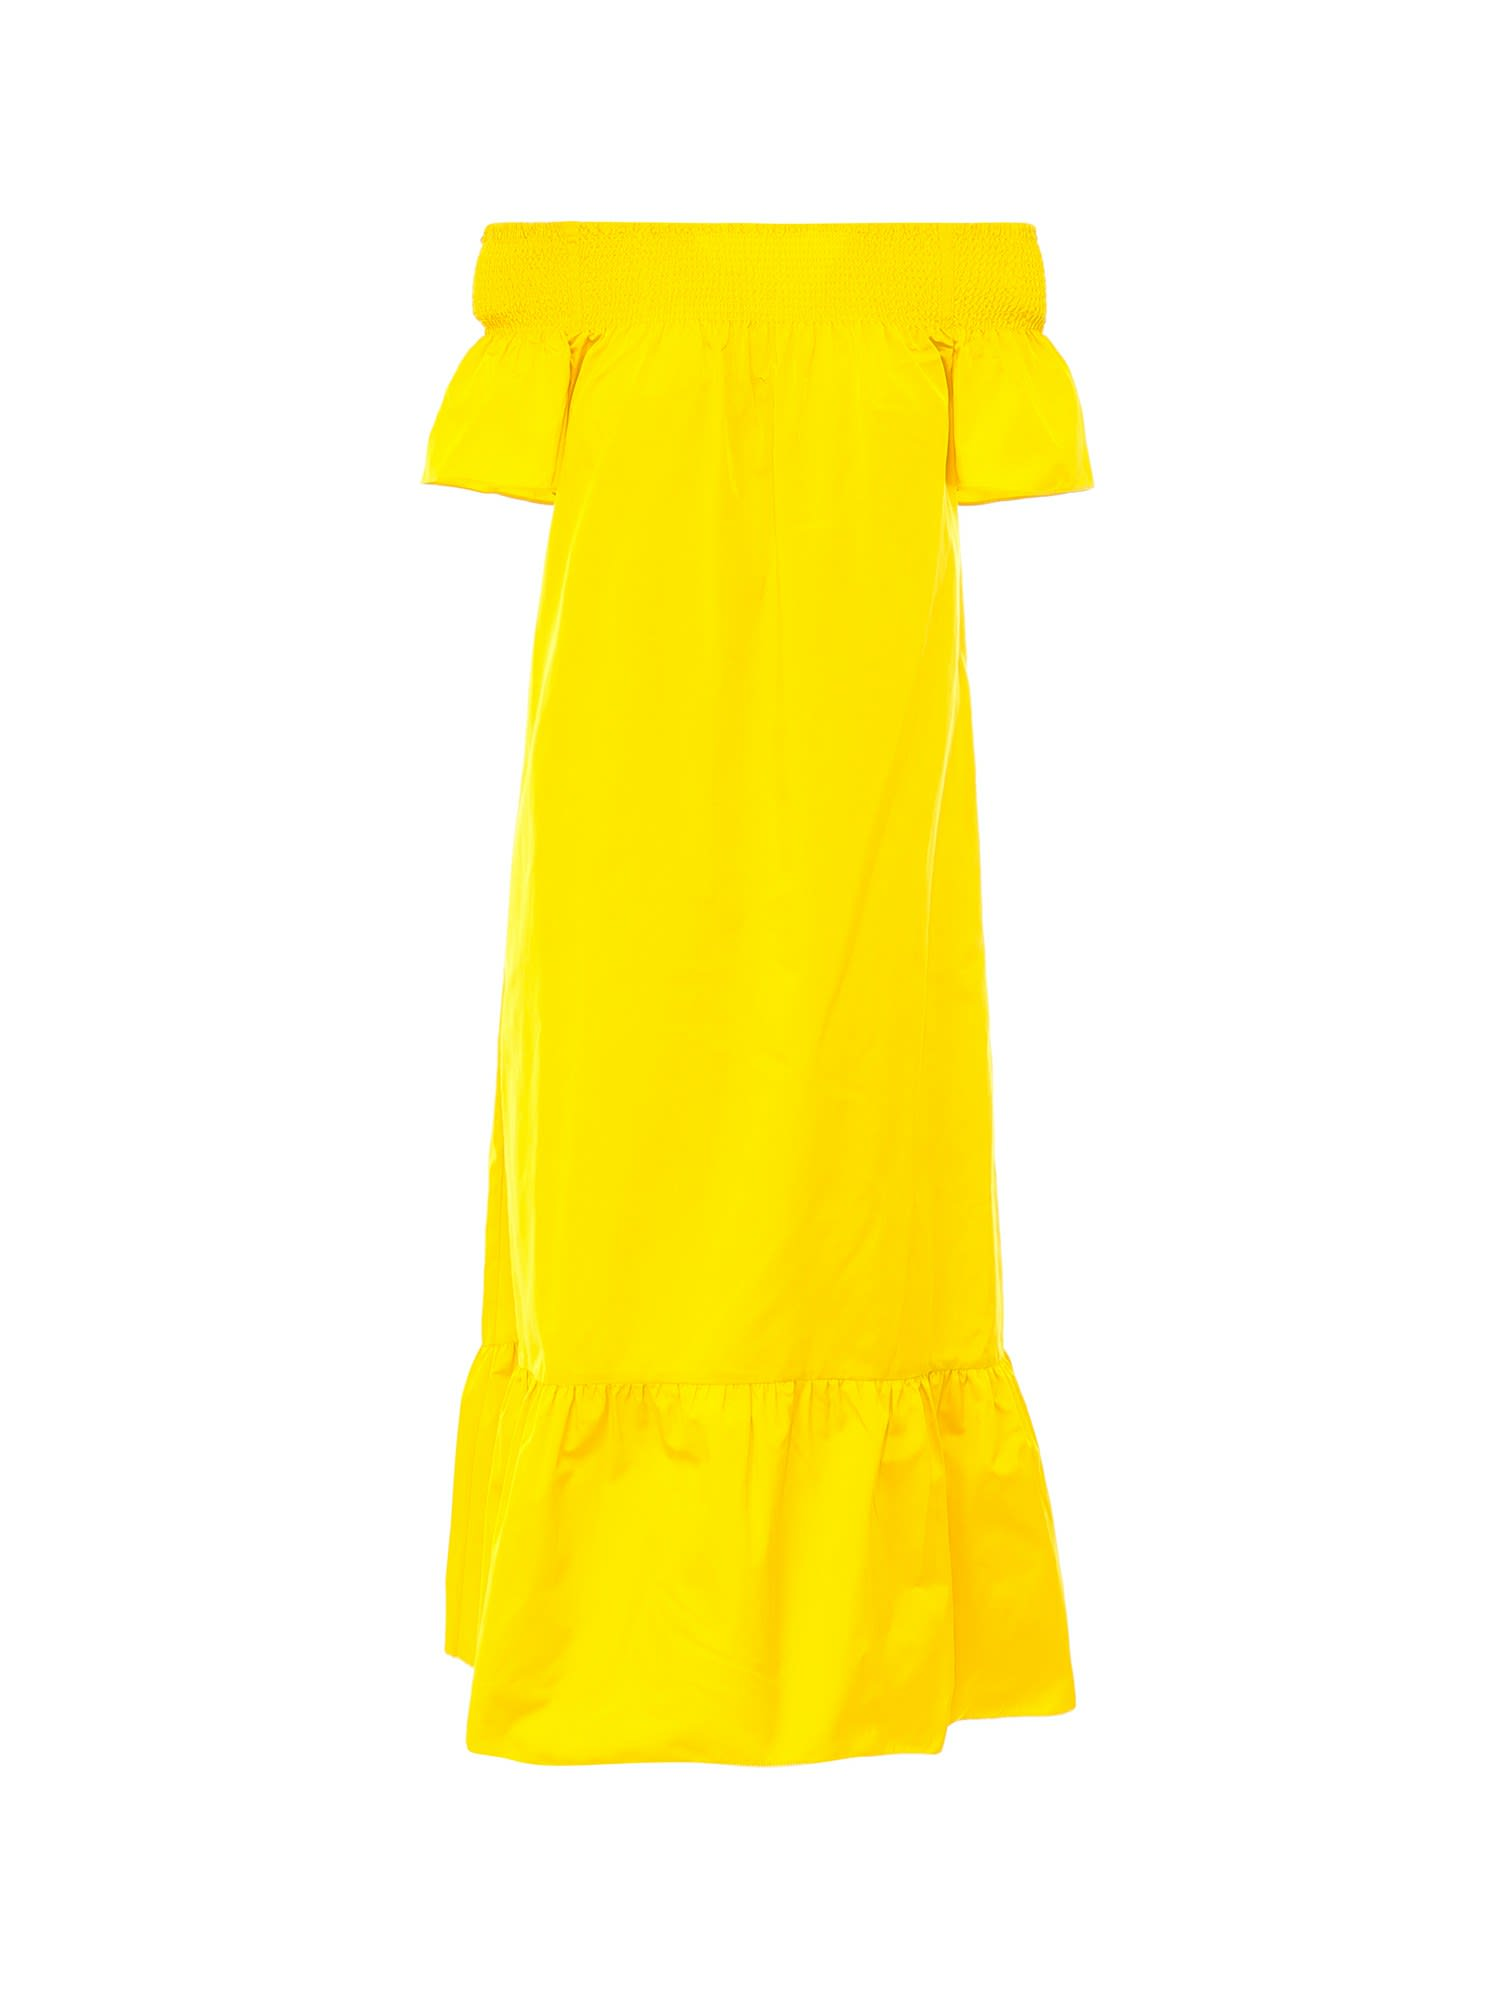 Buy Tory Burch Smocked Shoulder Tie Dress online, shop Tory Burch with free shipping